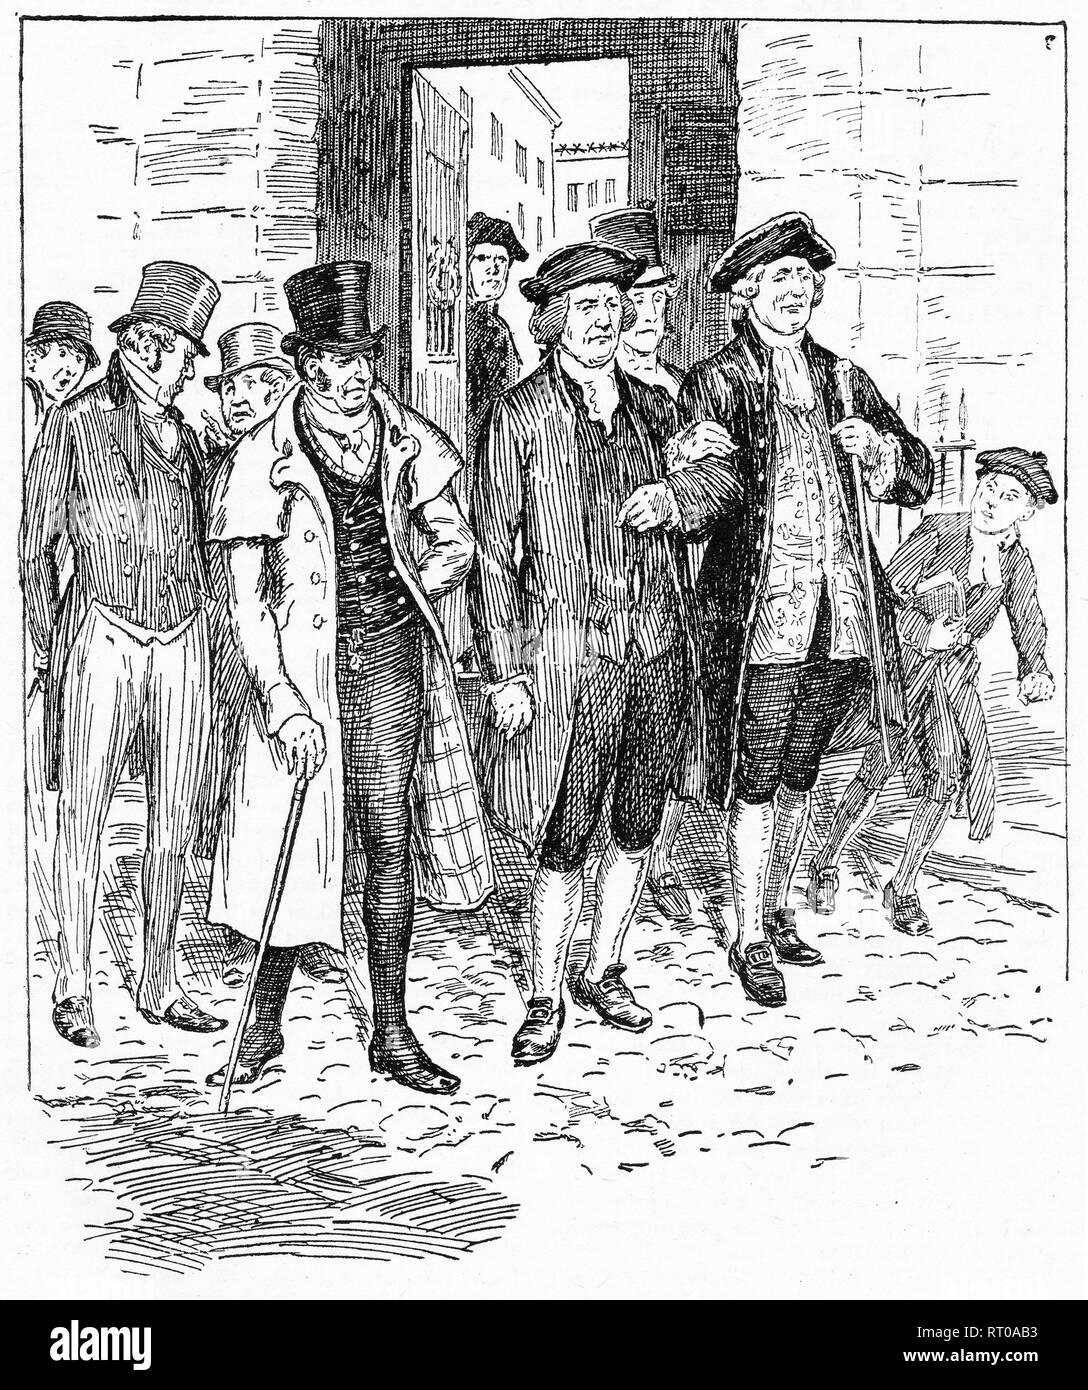 Engraving of several men of high station being greeted in the streets of London with some derision. From Chatterbox magazine, 1905 - Stock Image